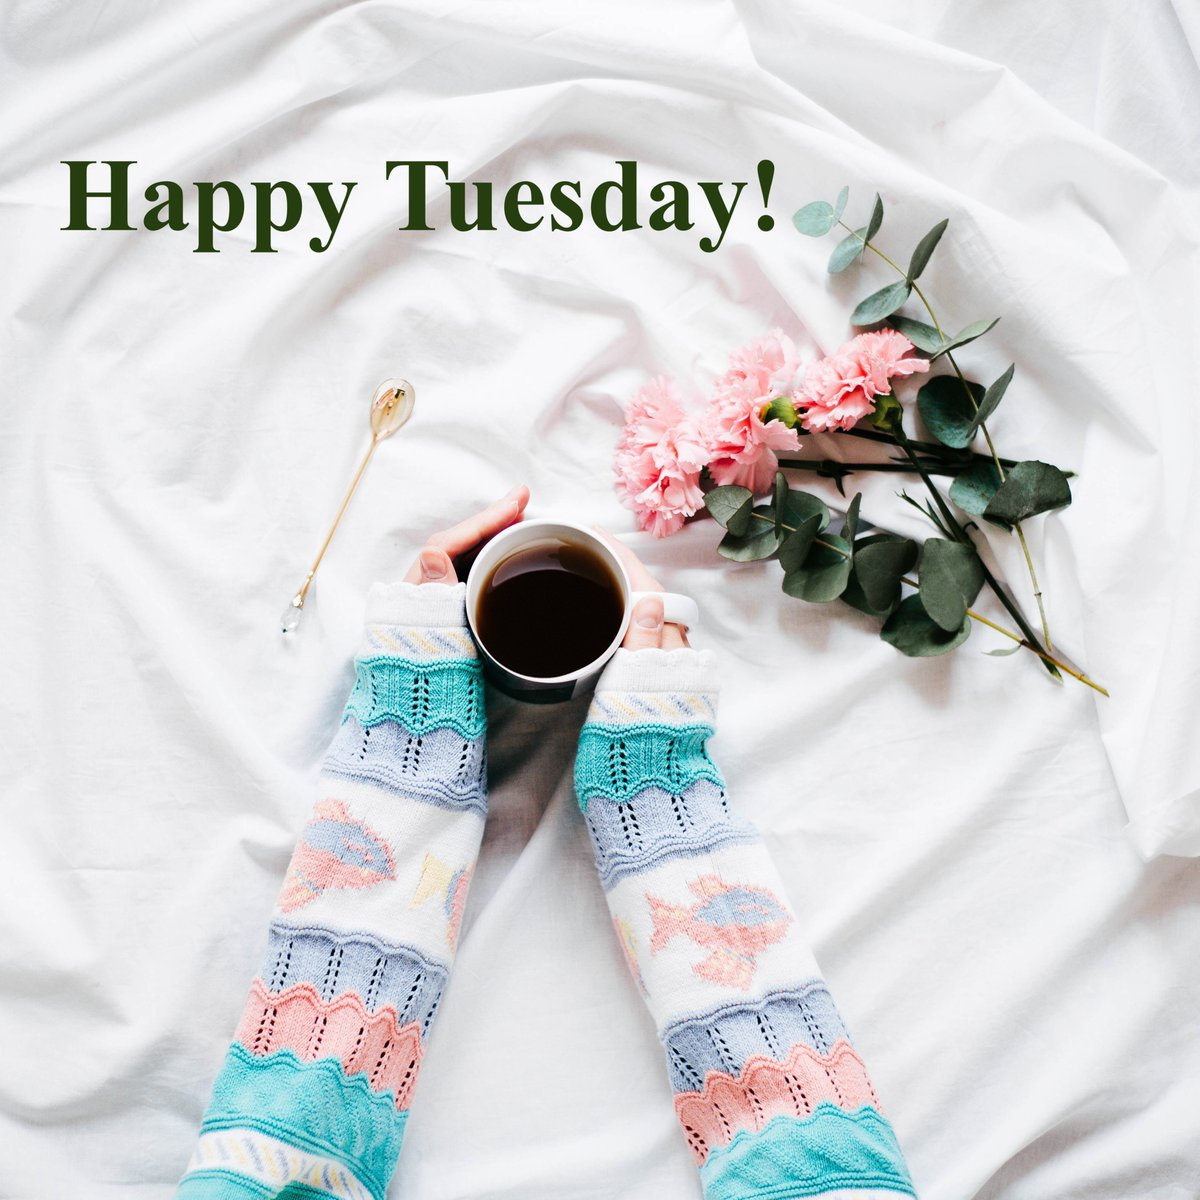 Happy Tuesday! Its going to be a terrific one for all of us. #TuesdayThoughts #TuesdayMotivation #TuesdayMorning #IAM #JoyTRAIN #goodmorning #coffeelovers #morningjoe #InnerPeace